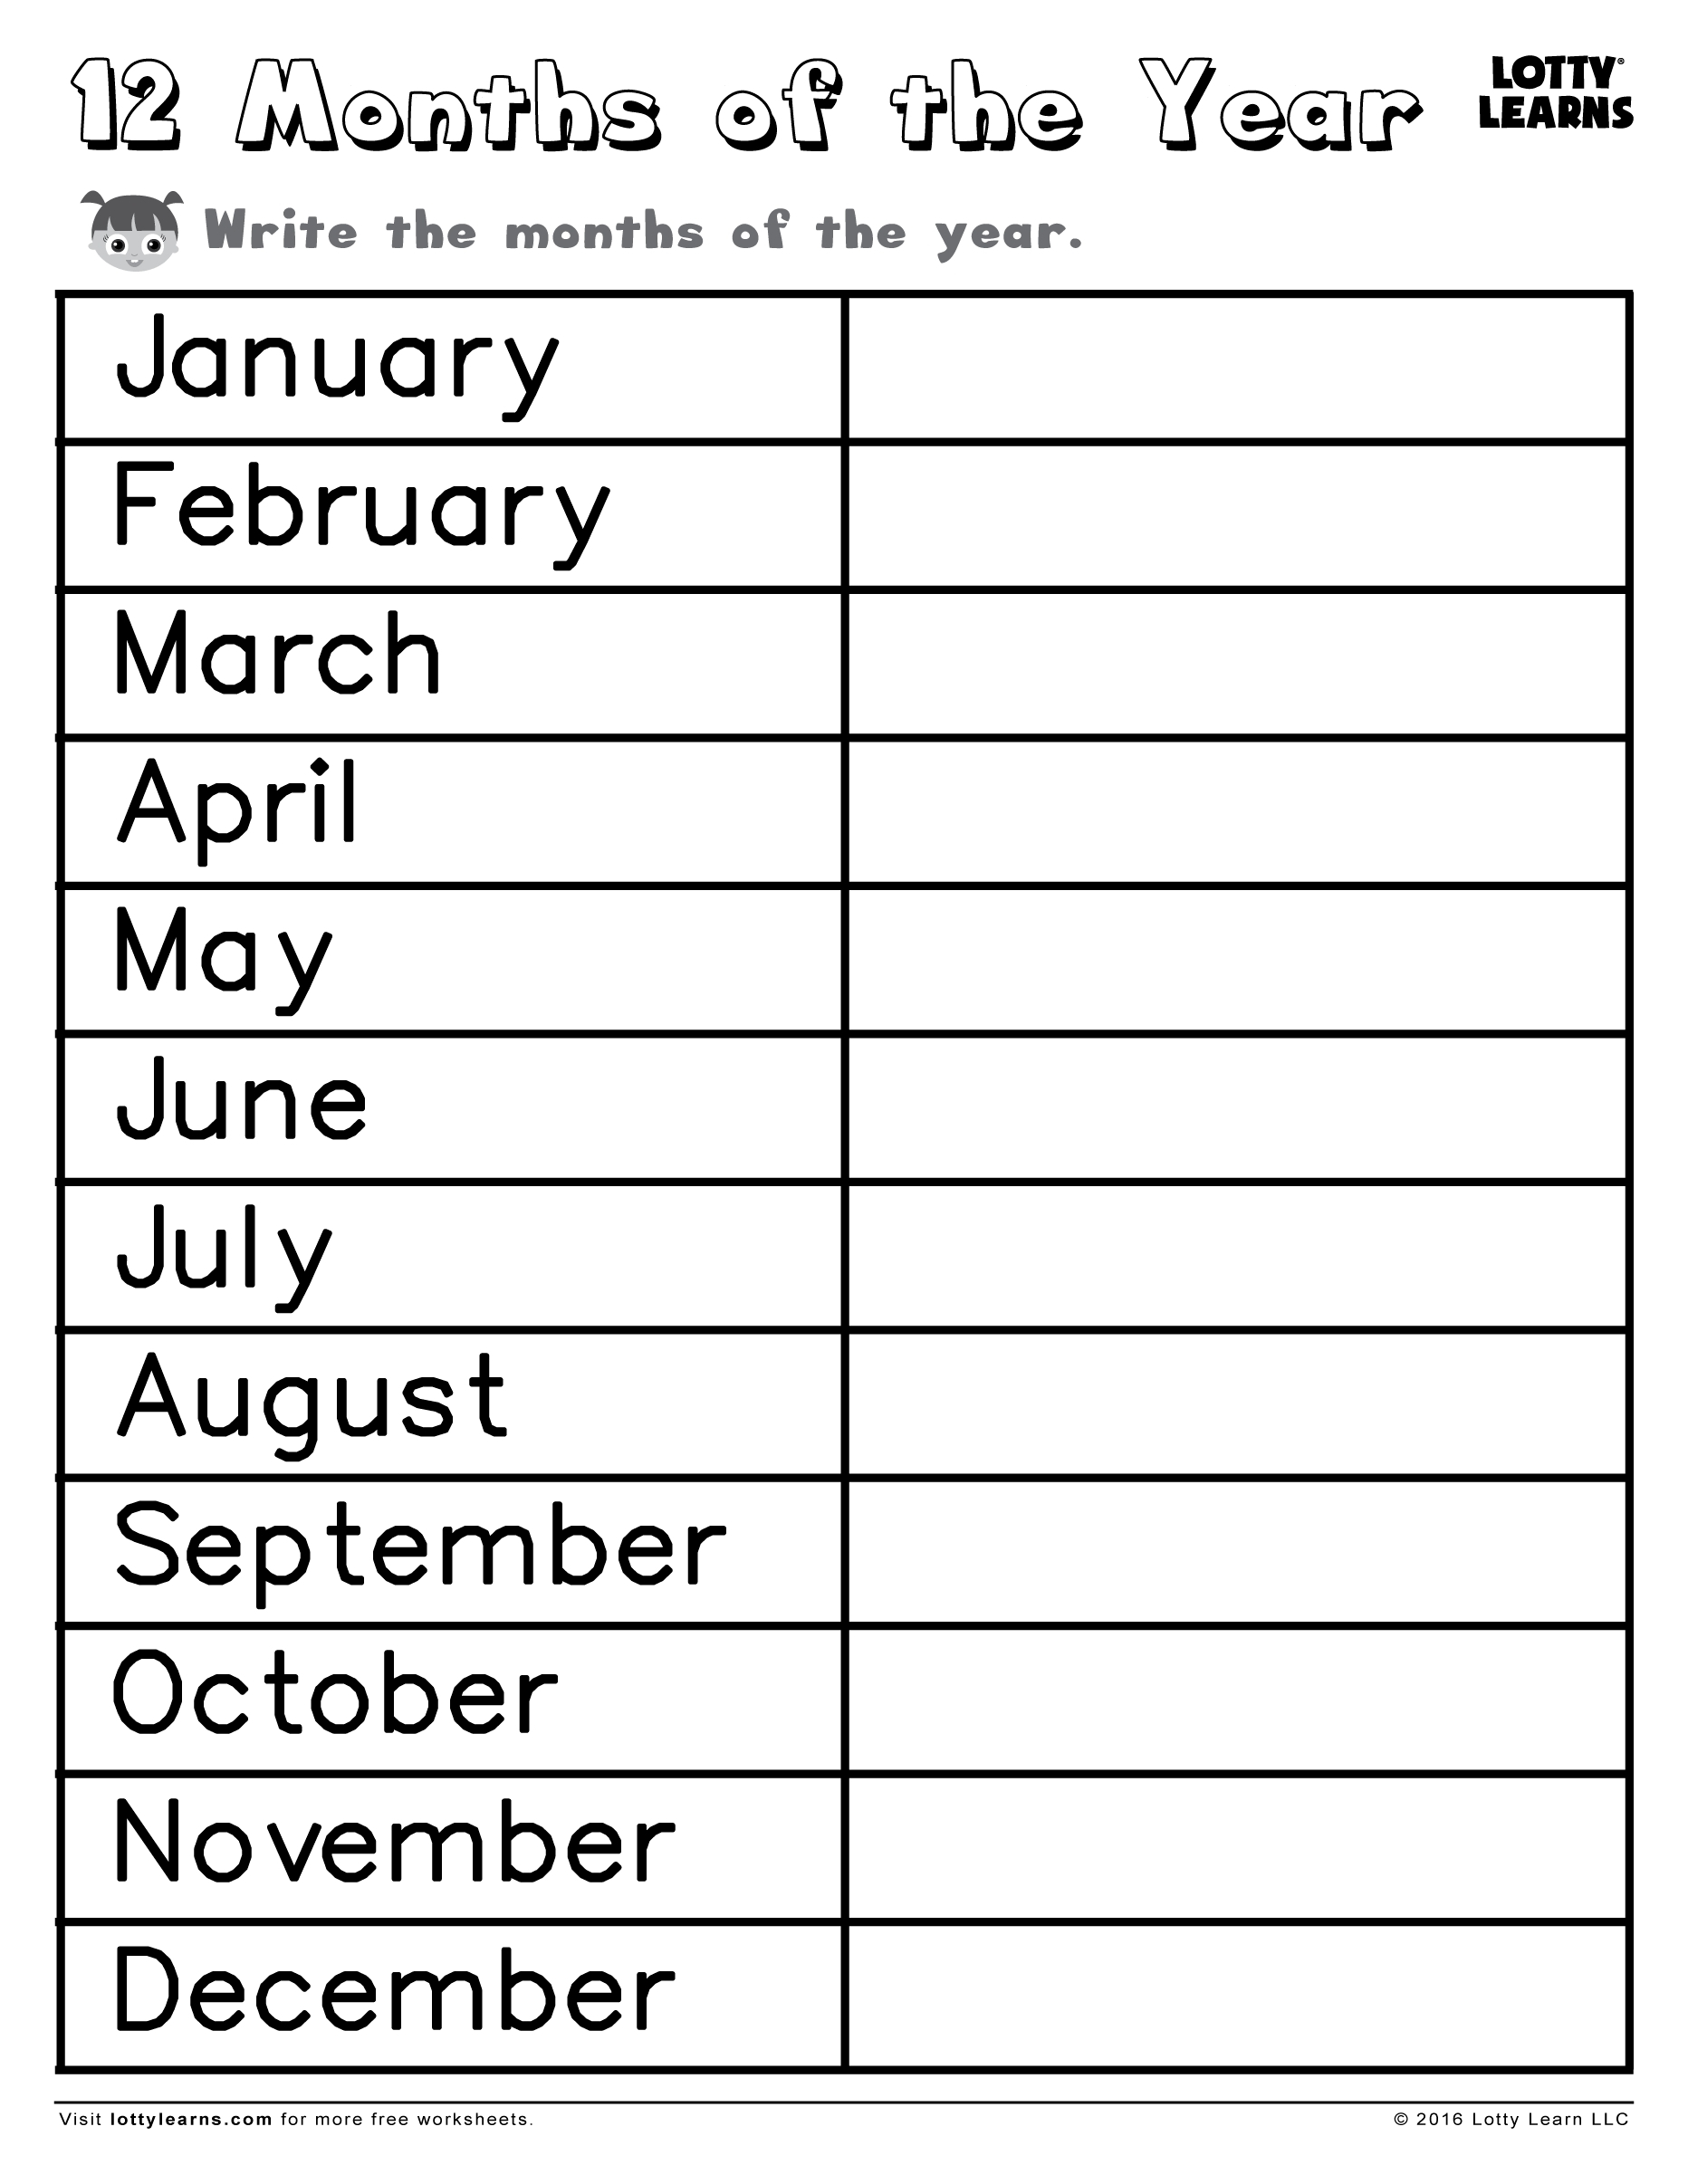 July-December Writing Months Of The Year Worksheet | Calendar Format with regard to July-December Writing Months Of The Year Worksheet